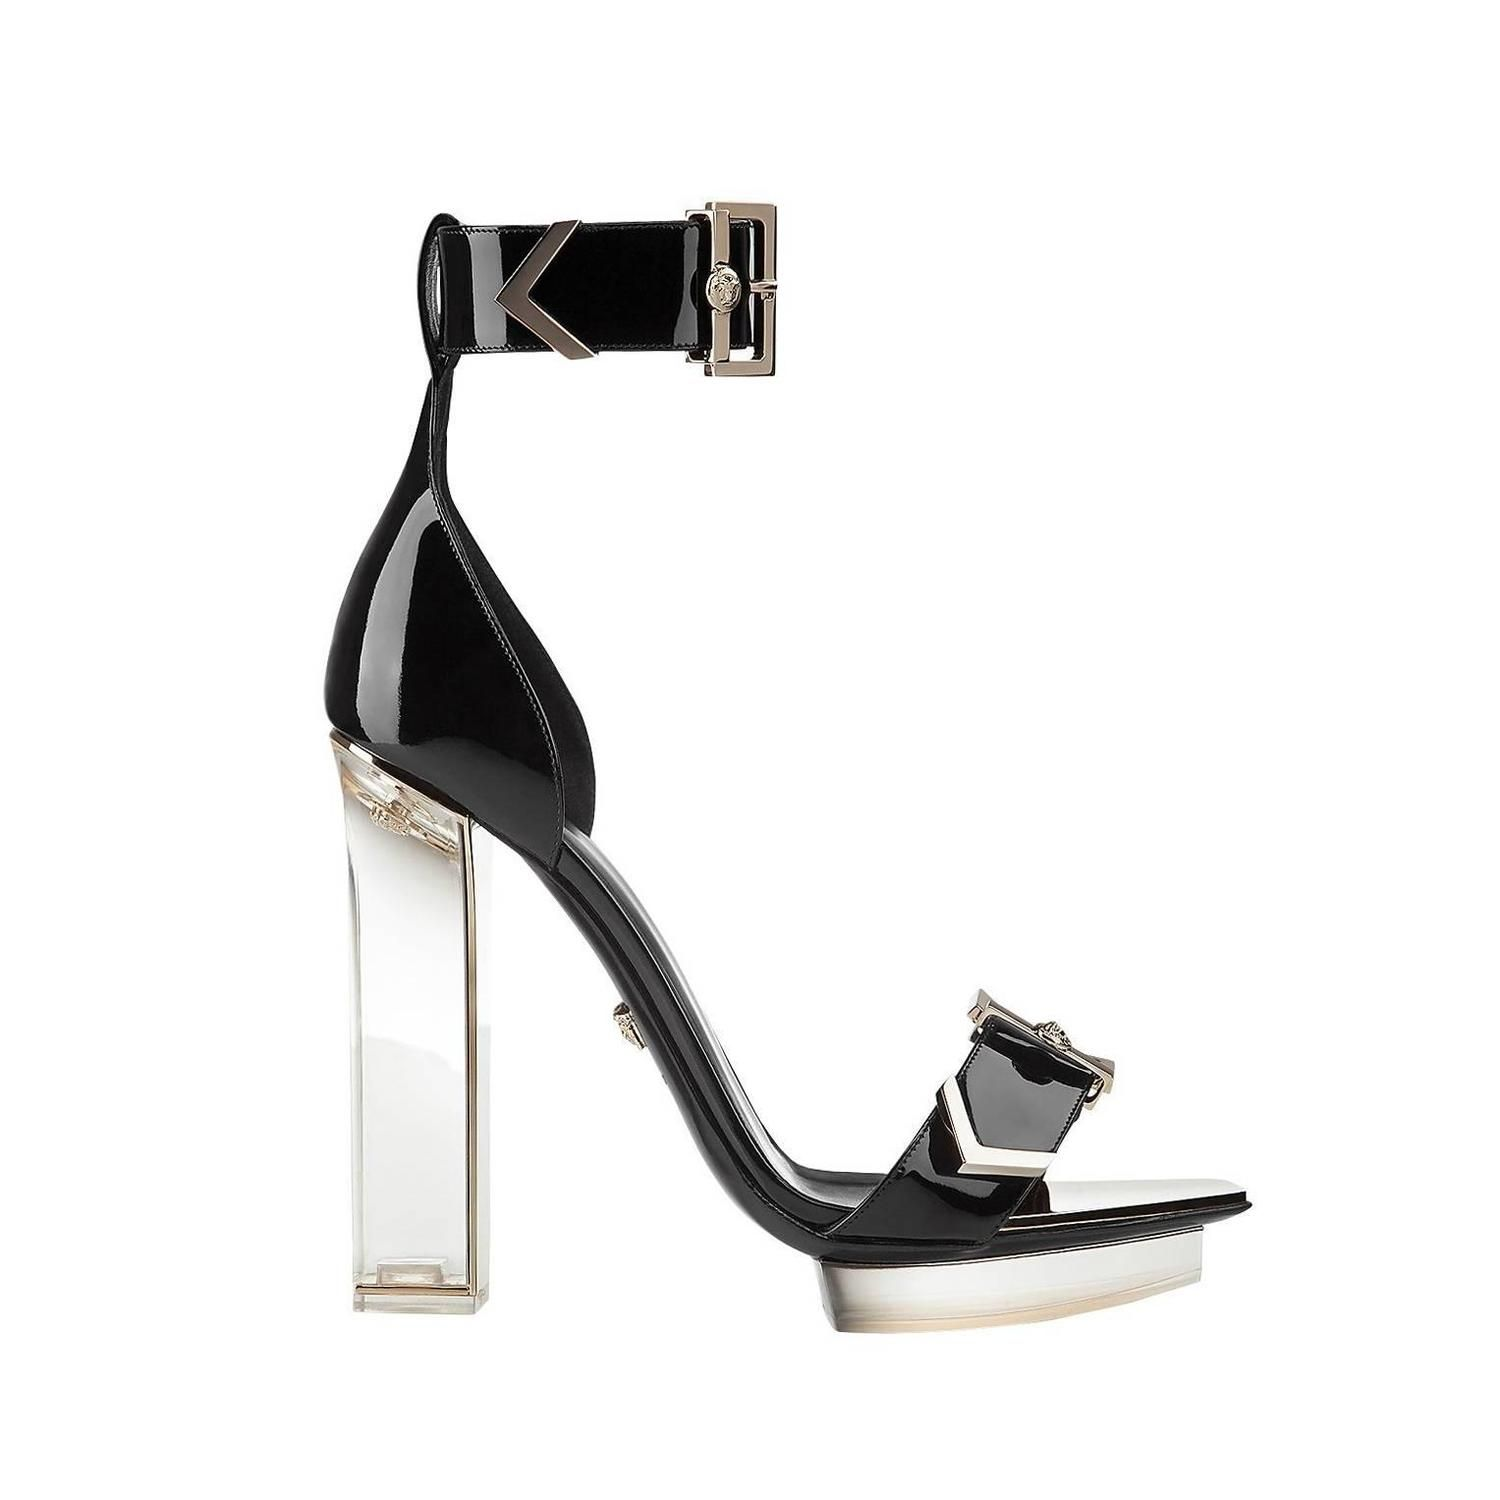 New VERSACE black patent leather